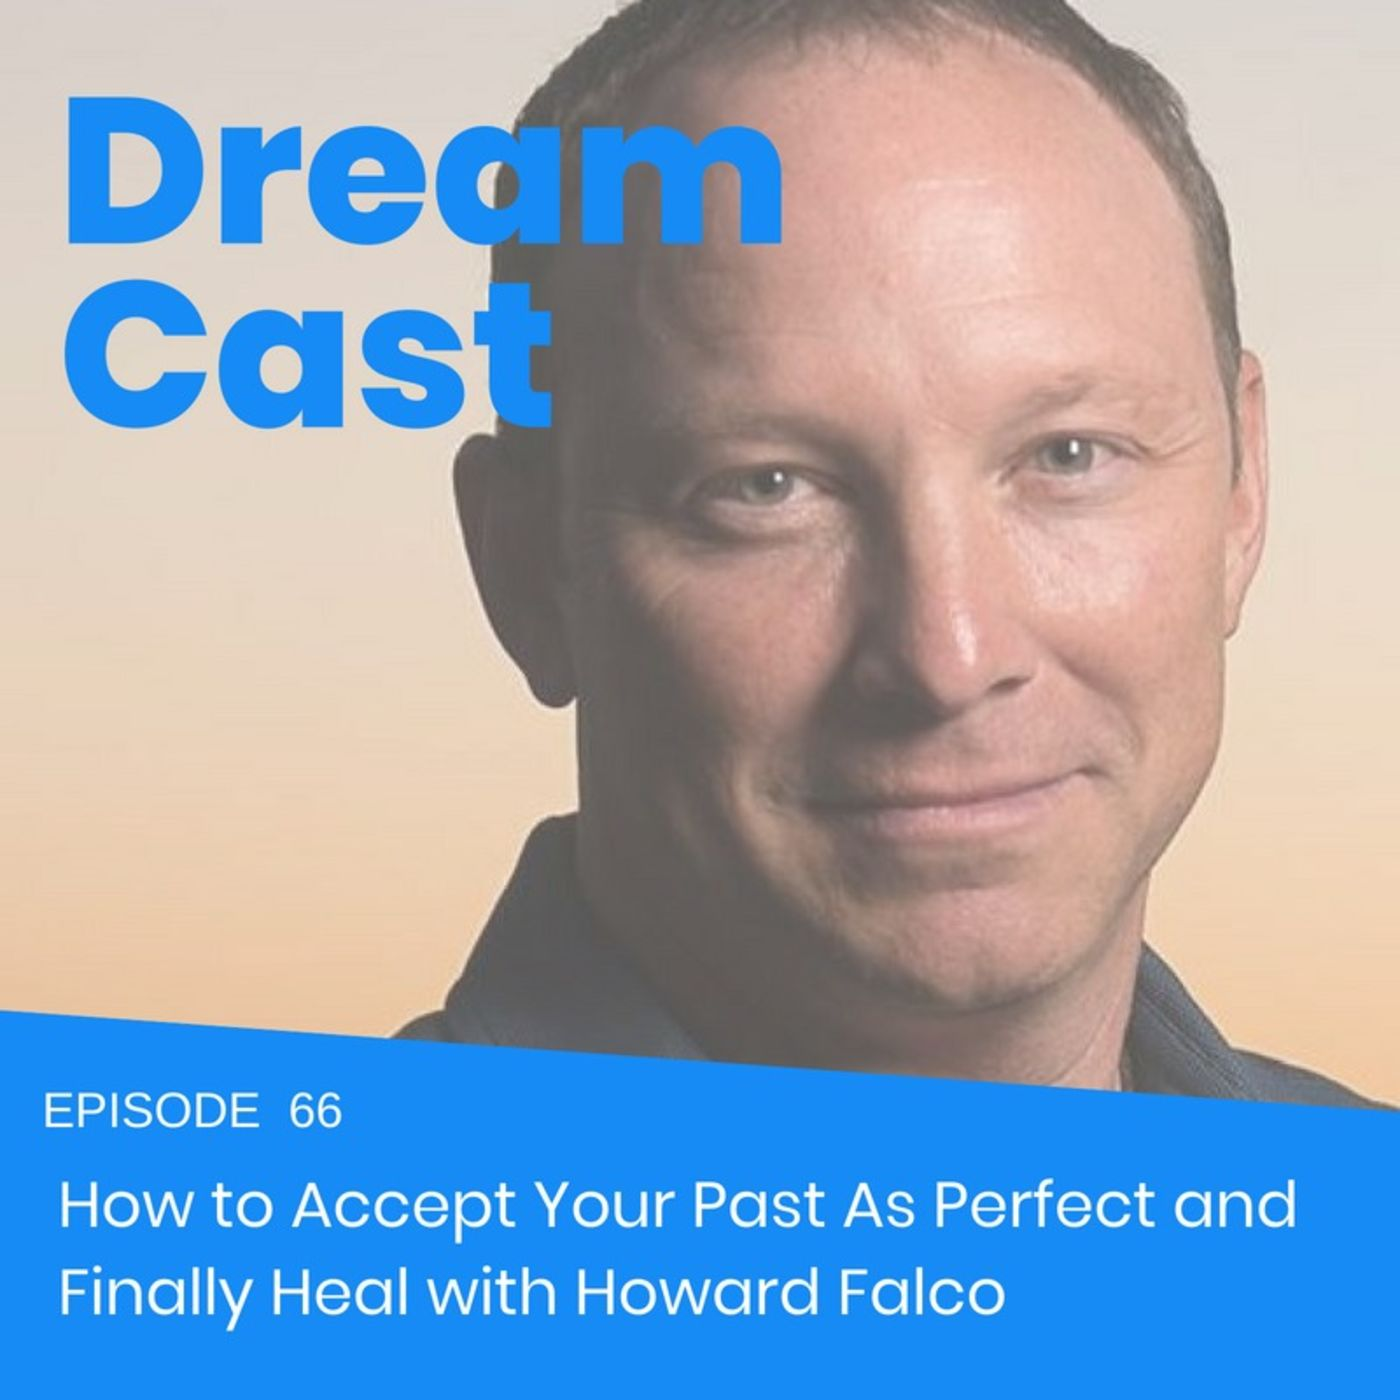 Episode 66 - How to Accept Your Past As Perfect and Finally Heal with Howard Falco